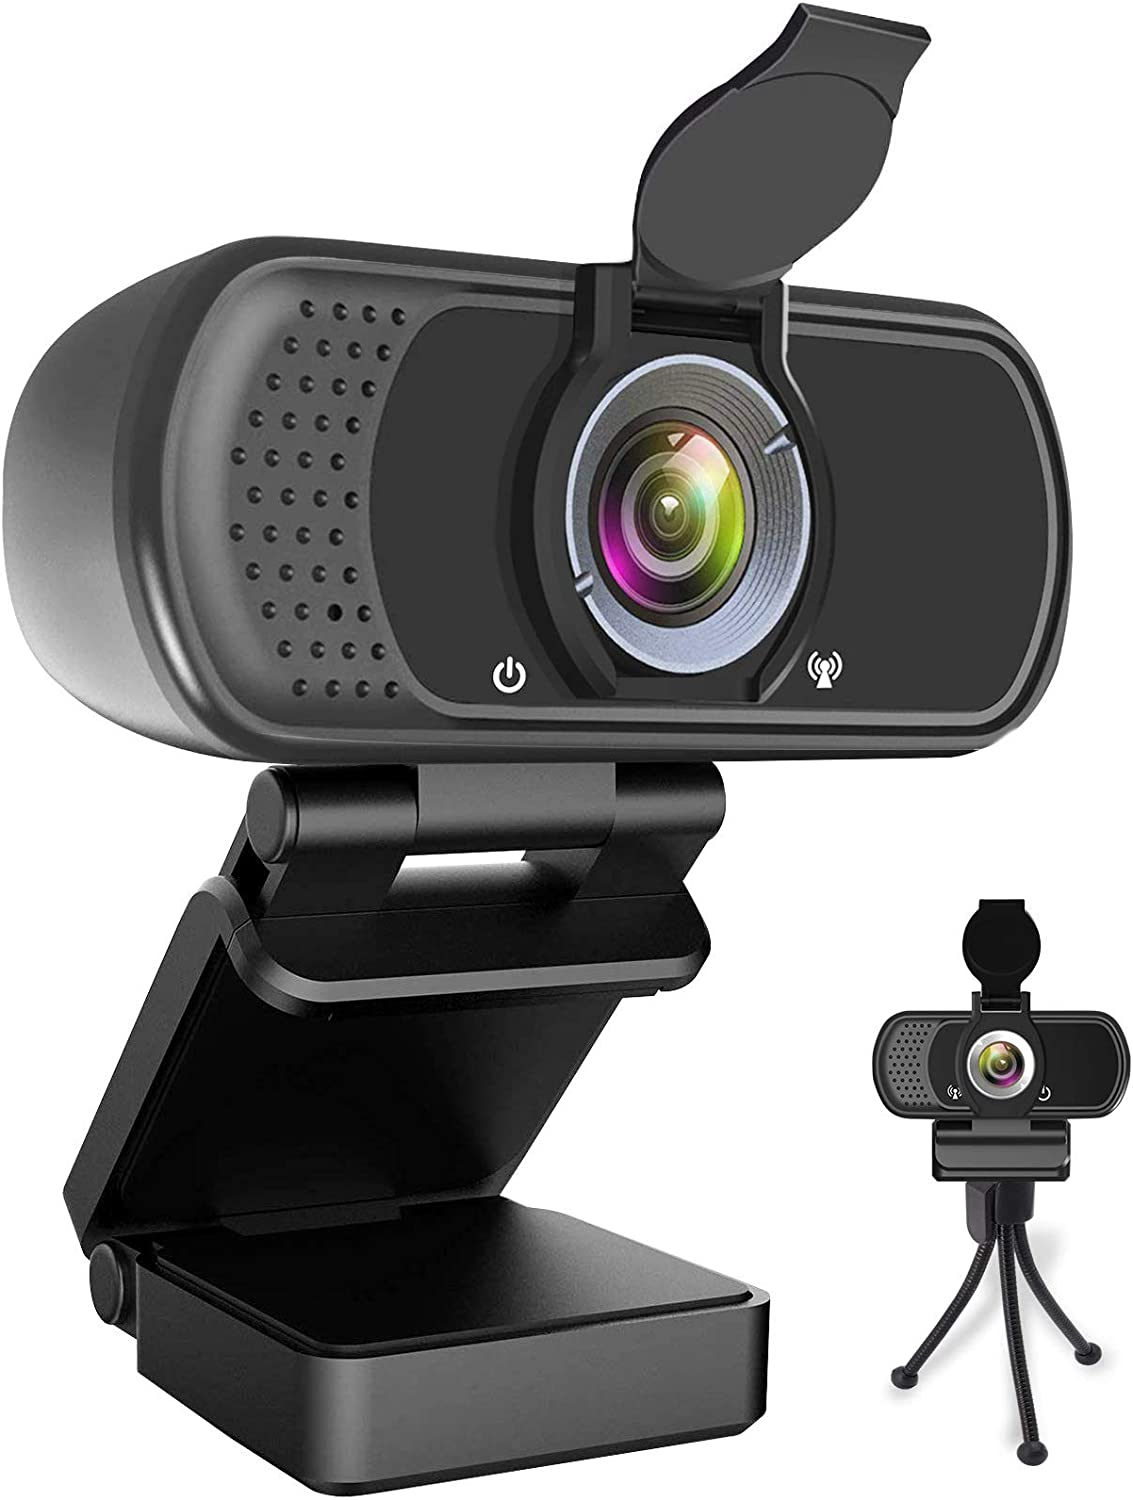 4MP HD USB Webcam with Microphone Computer Camera Plug /& Play for Desktop Laptop Streaming Webcam with 110/° Wide View Angle and Noise Reduction Mic